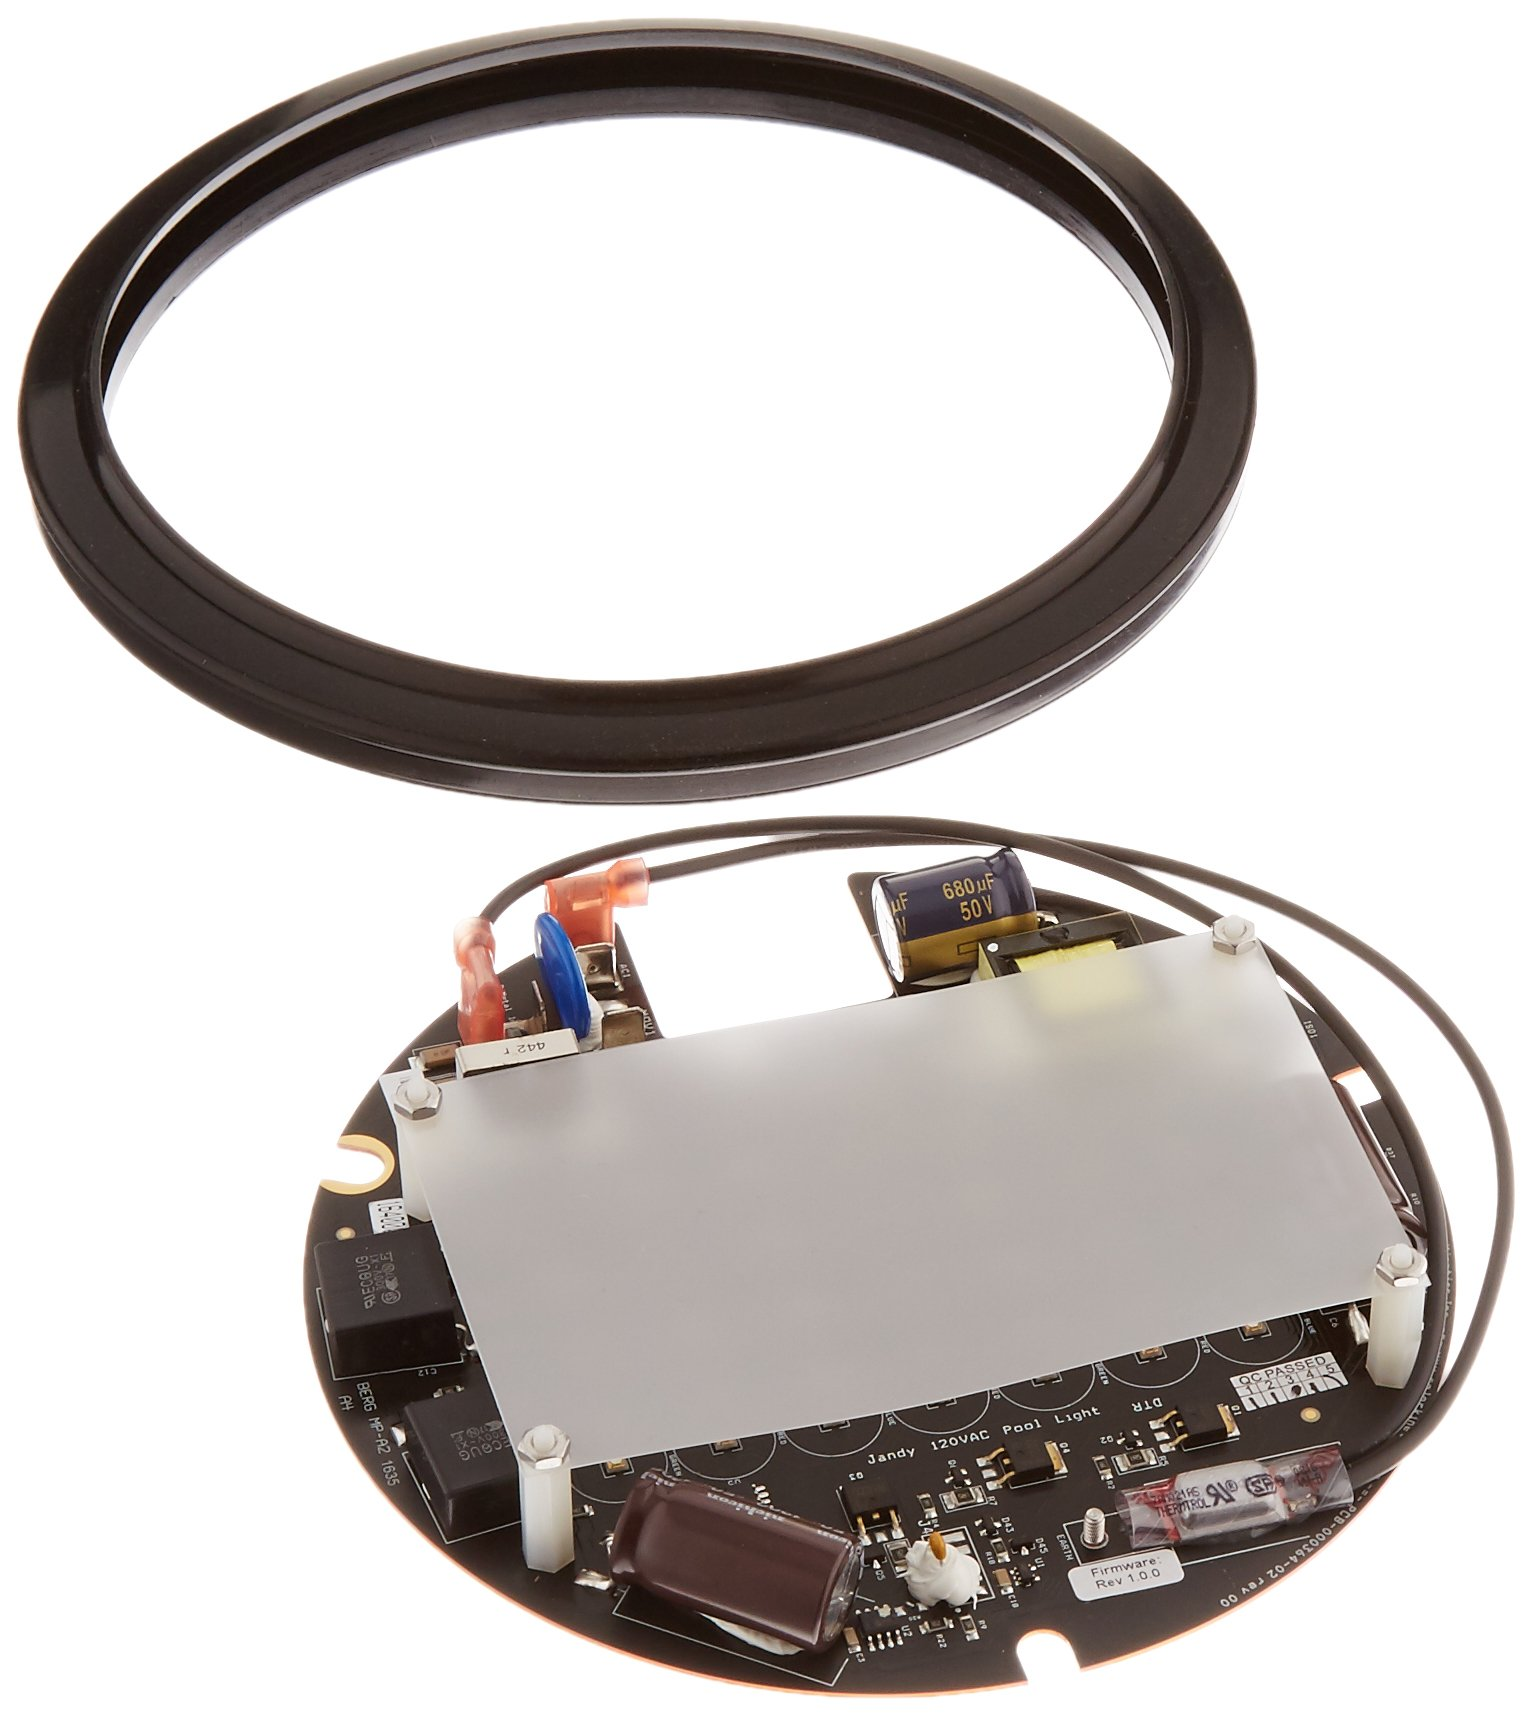 Zodiac R0474100 120-Volt Printed Circuit Board with Light Shaping Diverger Replacement for Select Zodiac Jandy WaterColors LED Large Light Engine by Zodiac